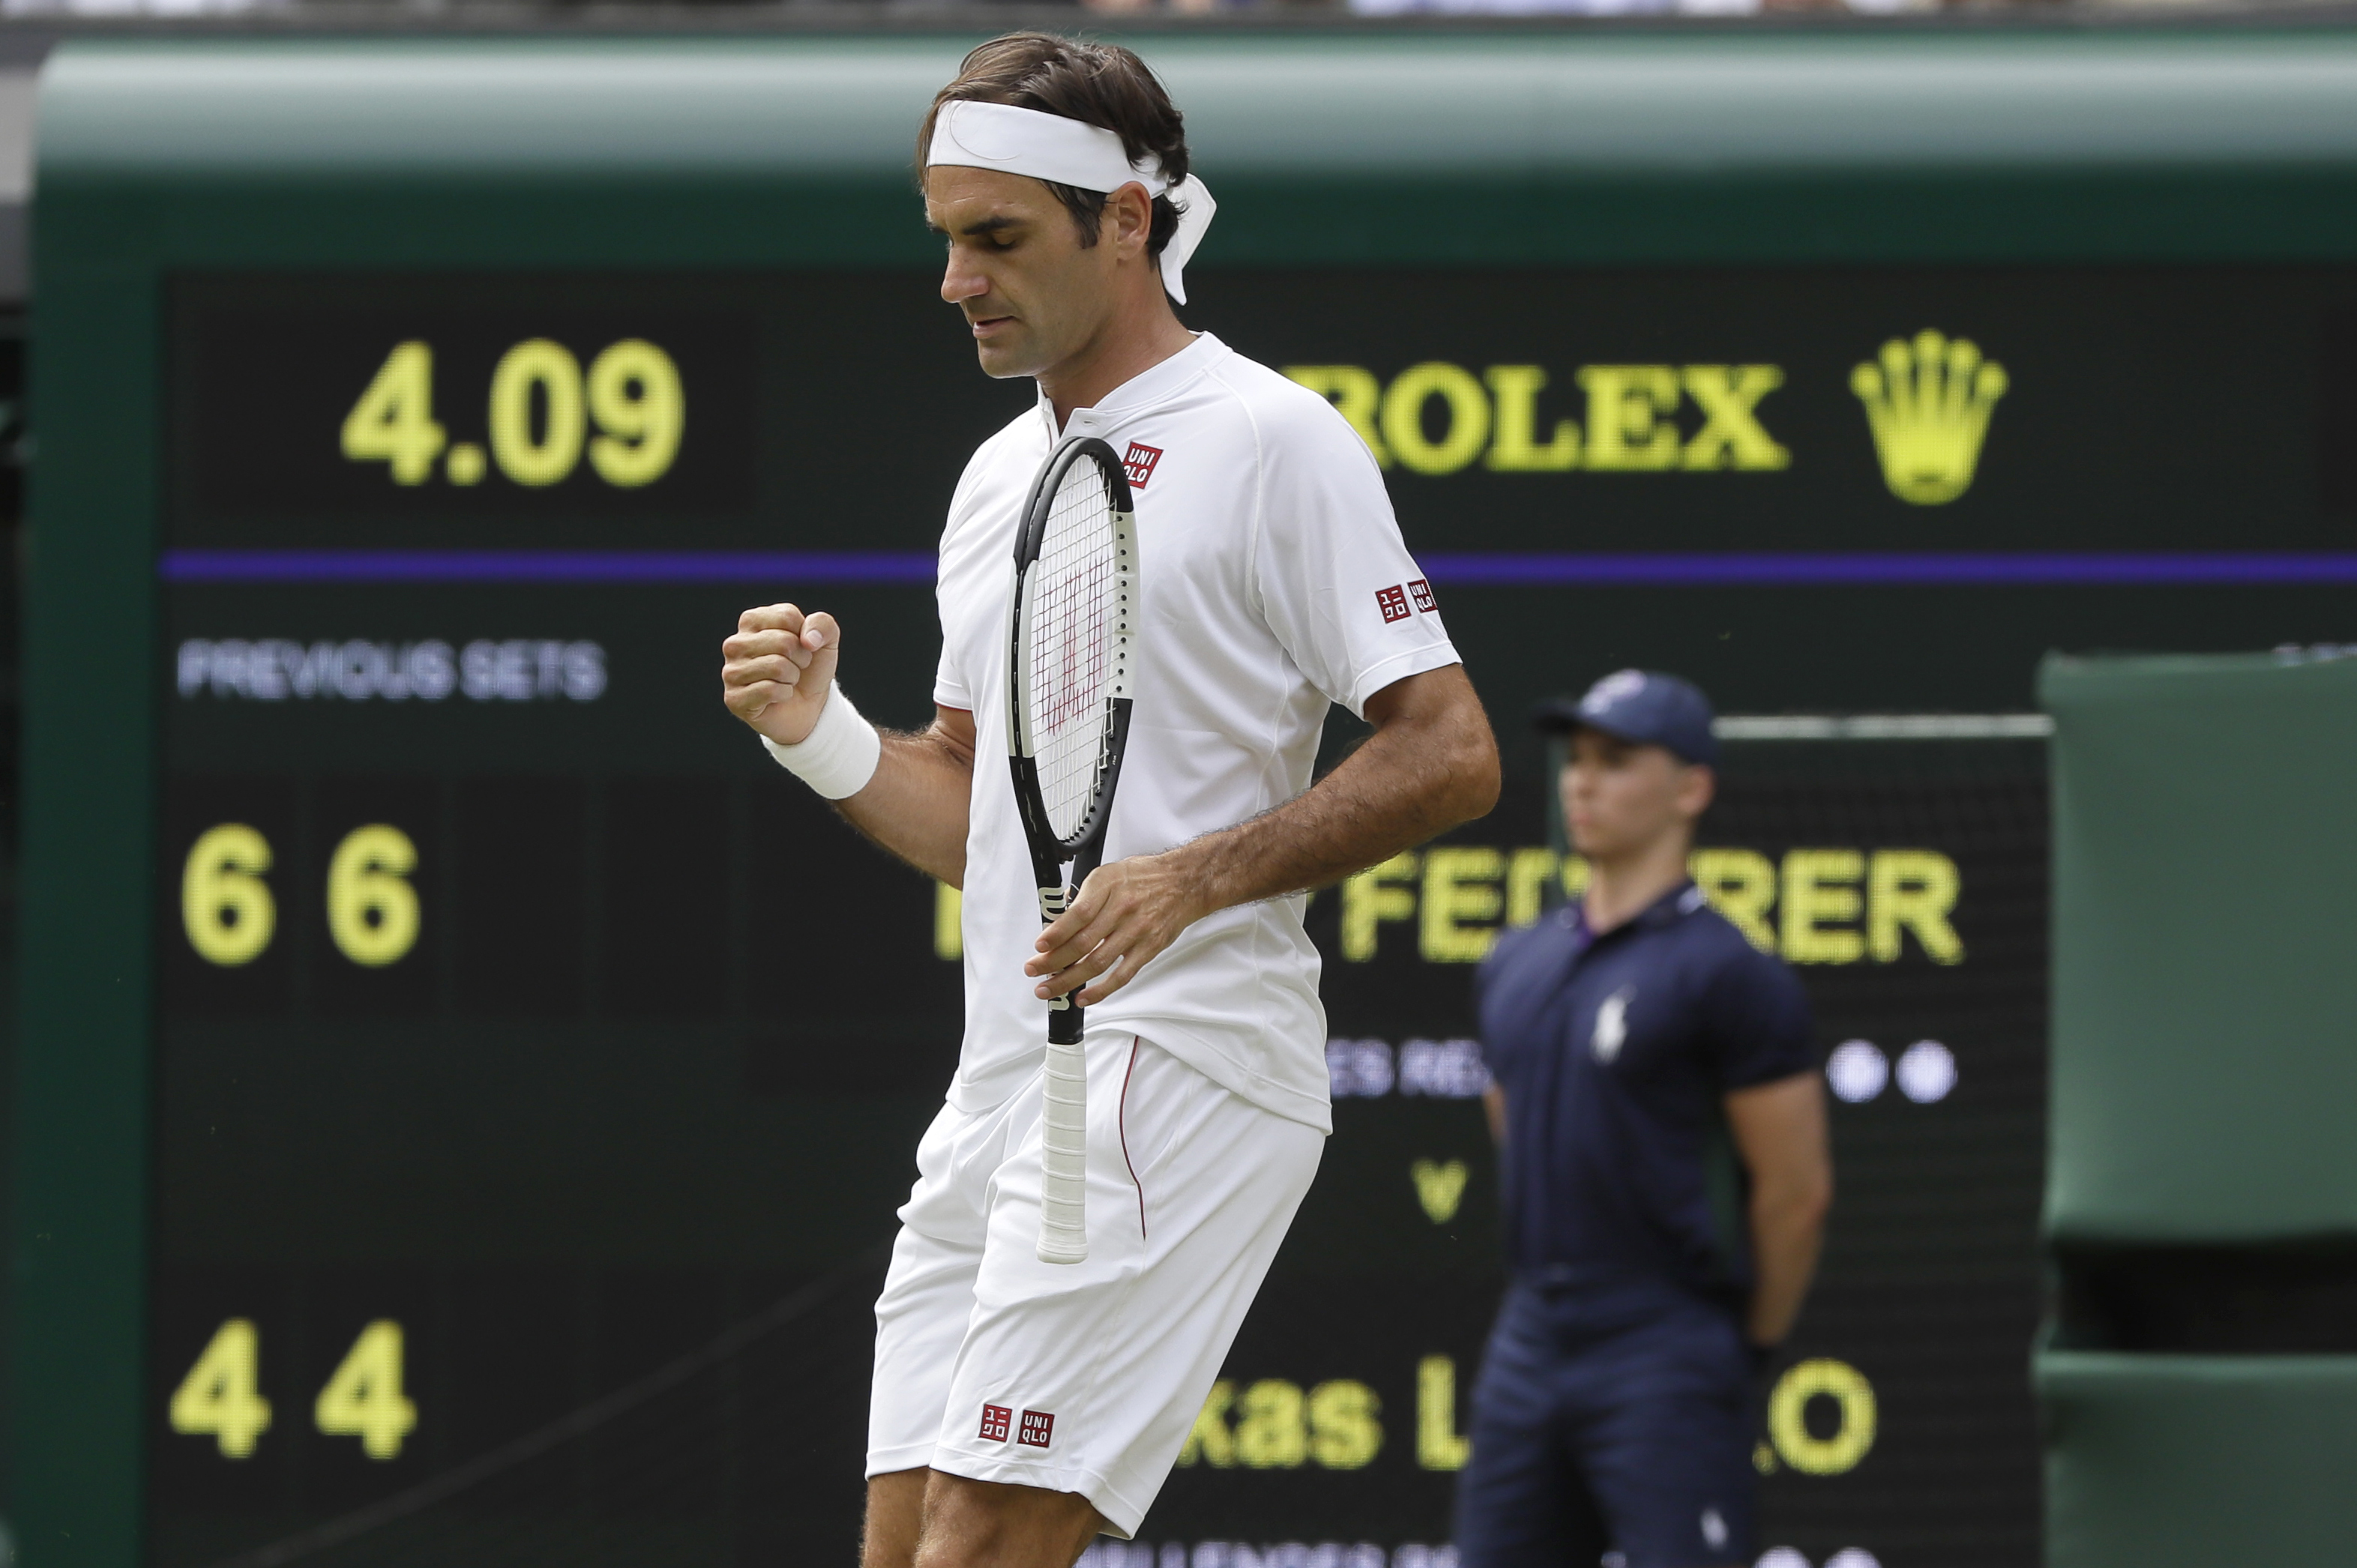 35 service points, 26 sets in a row at Wimbledon for Federer